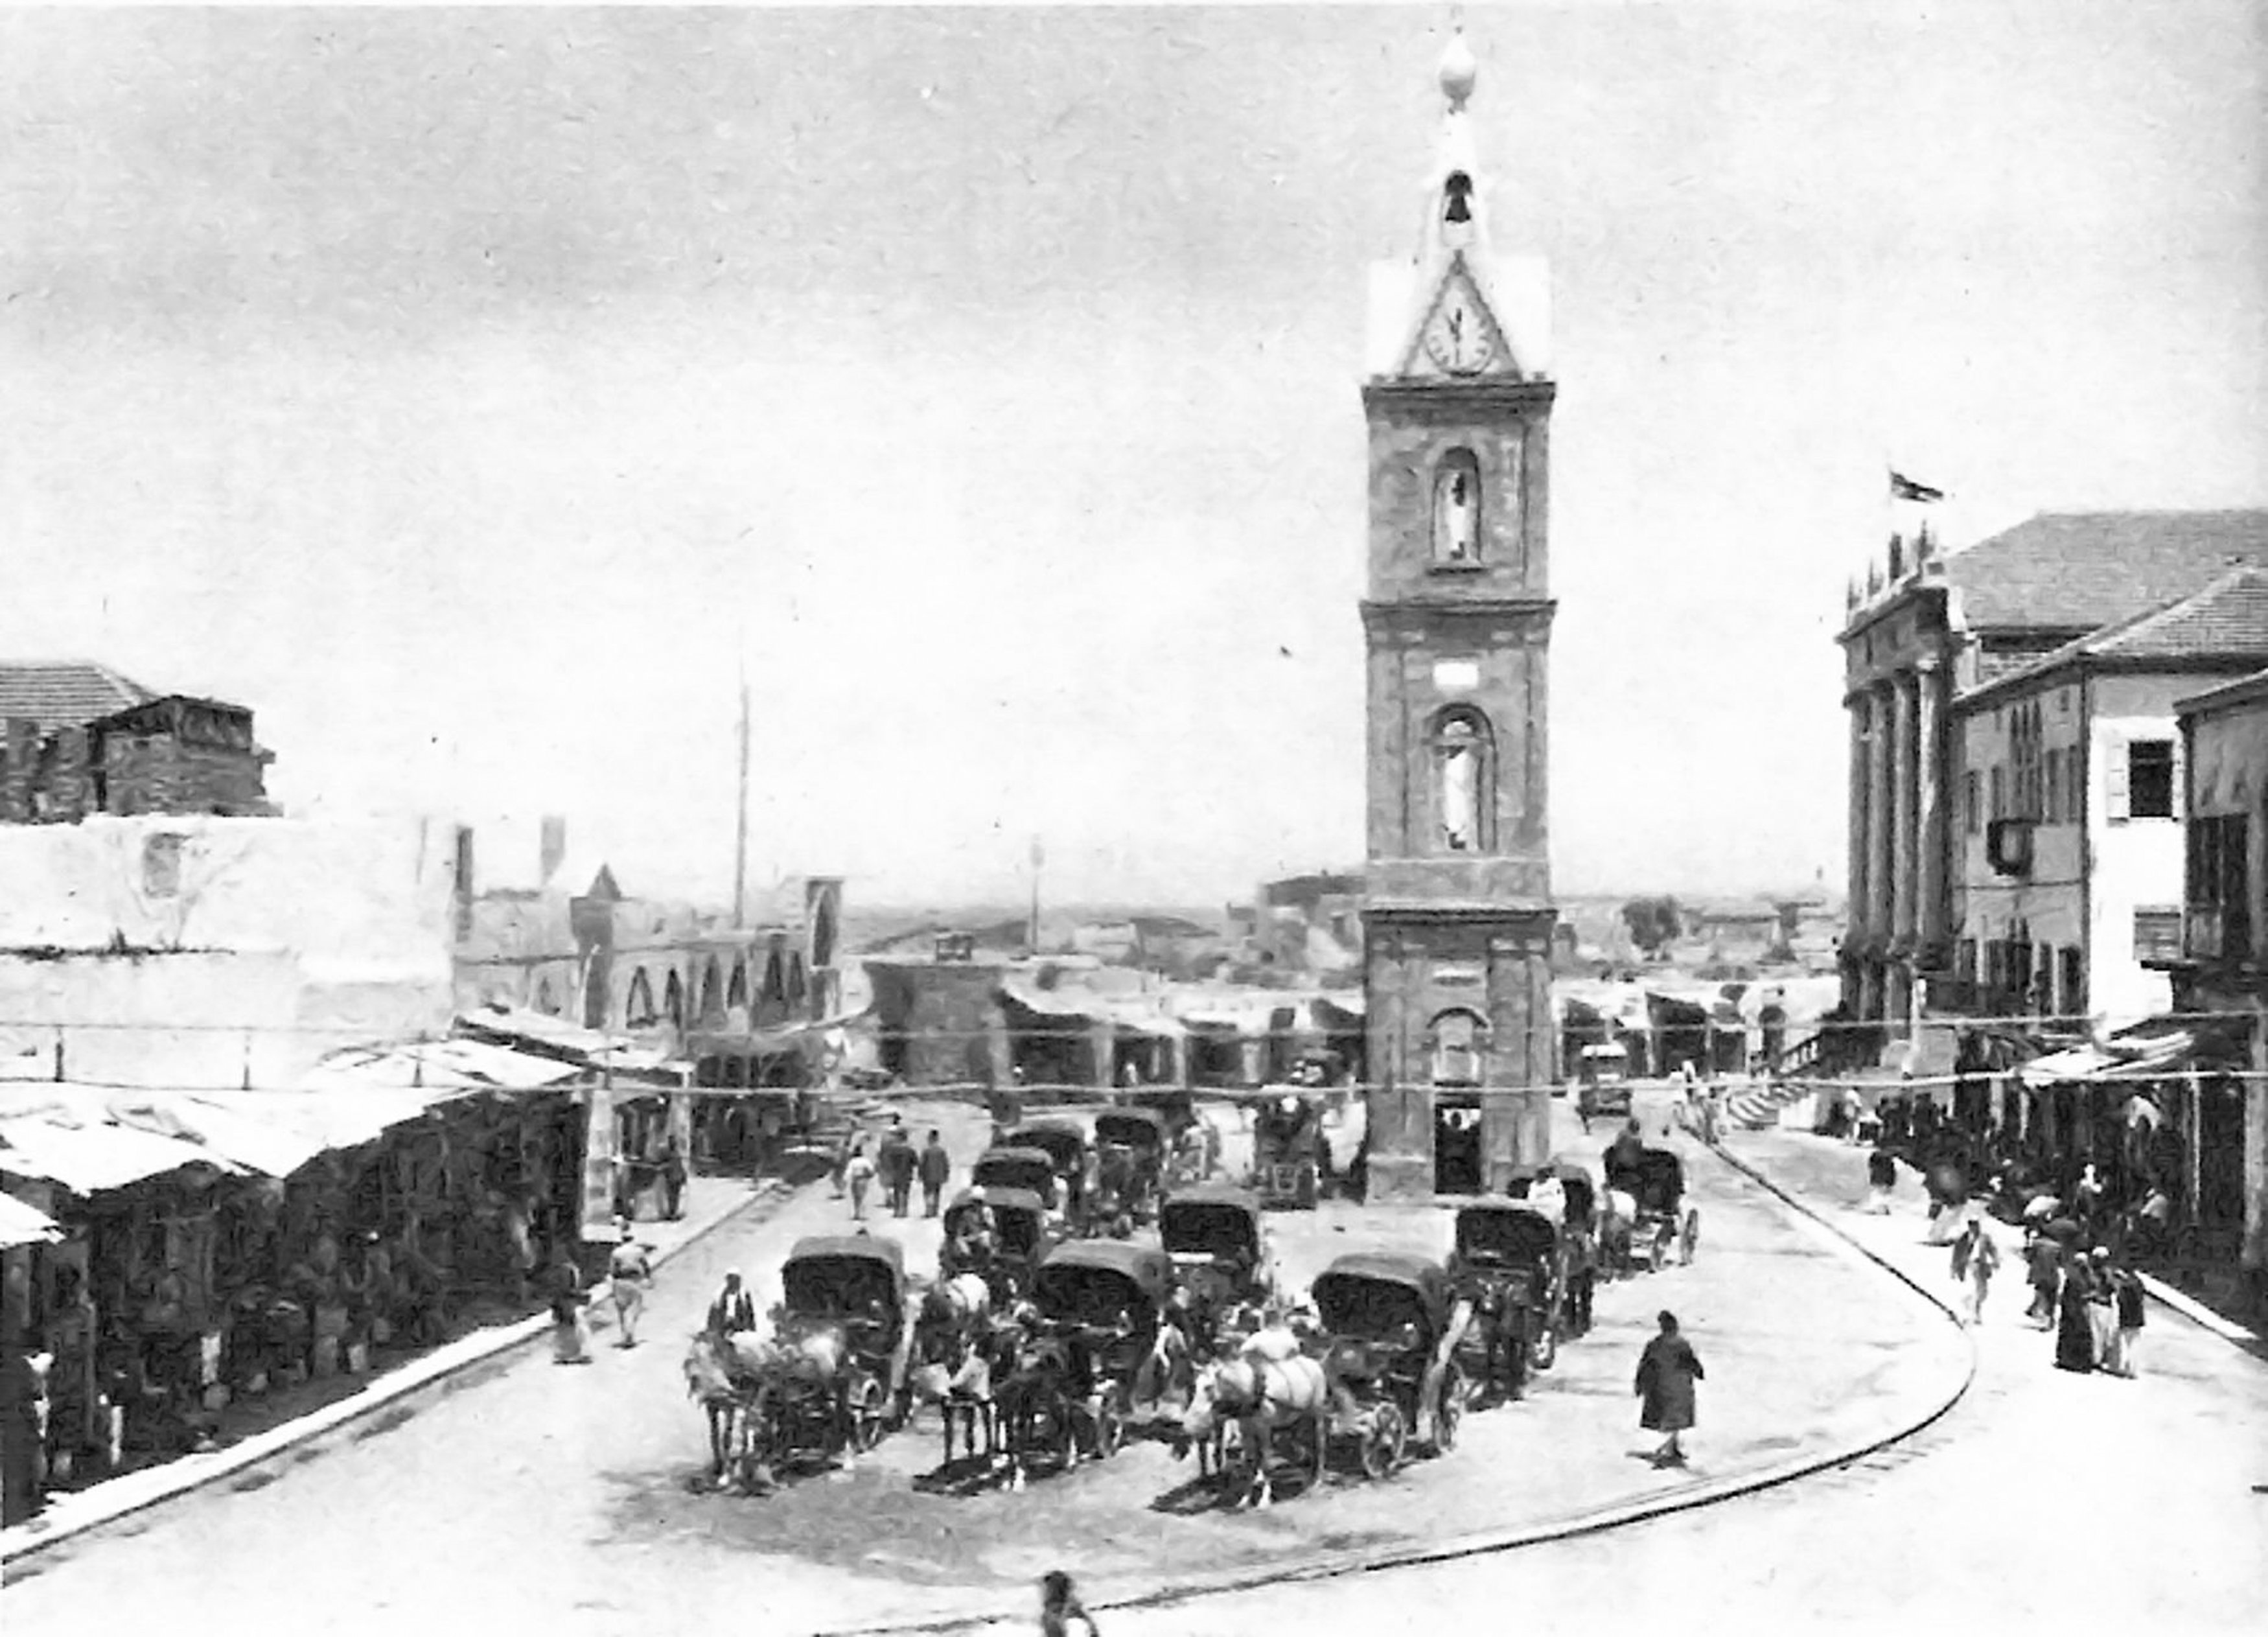 What The Jaffa Clock Tower Teaches Us About The Ottoman Empire